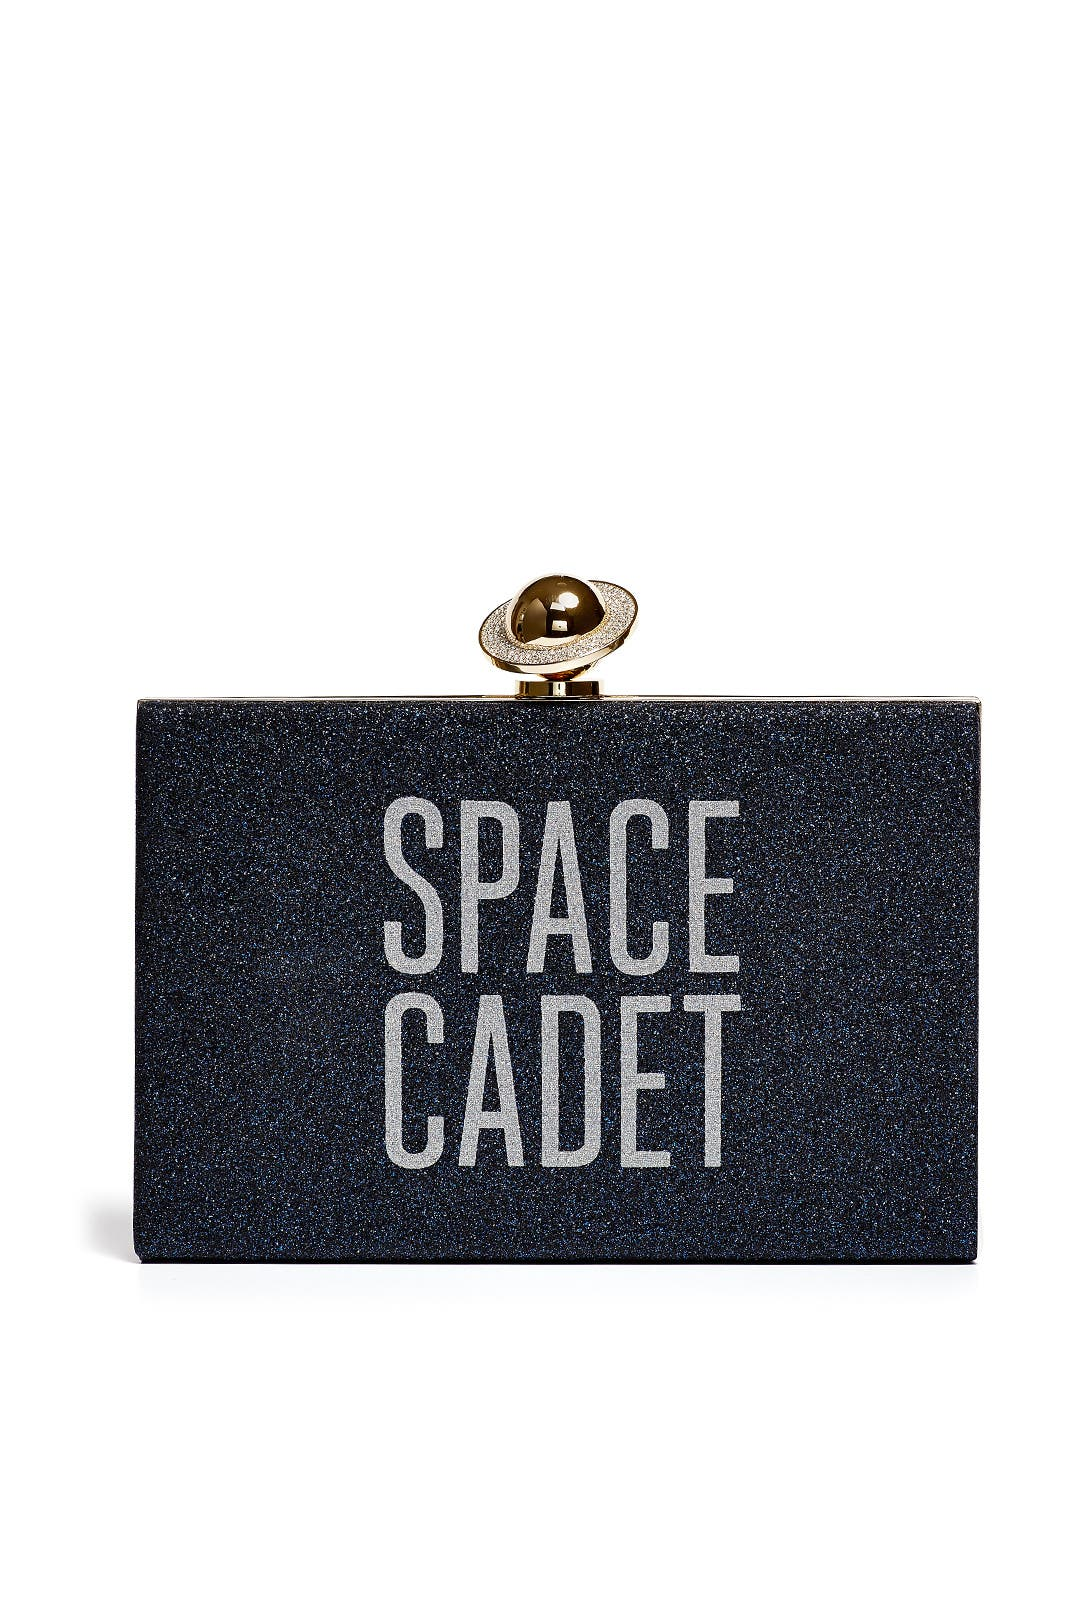 Over the Moon Space Cadet Clutch by kate spade new york accessories